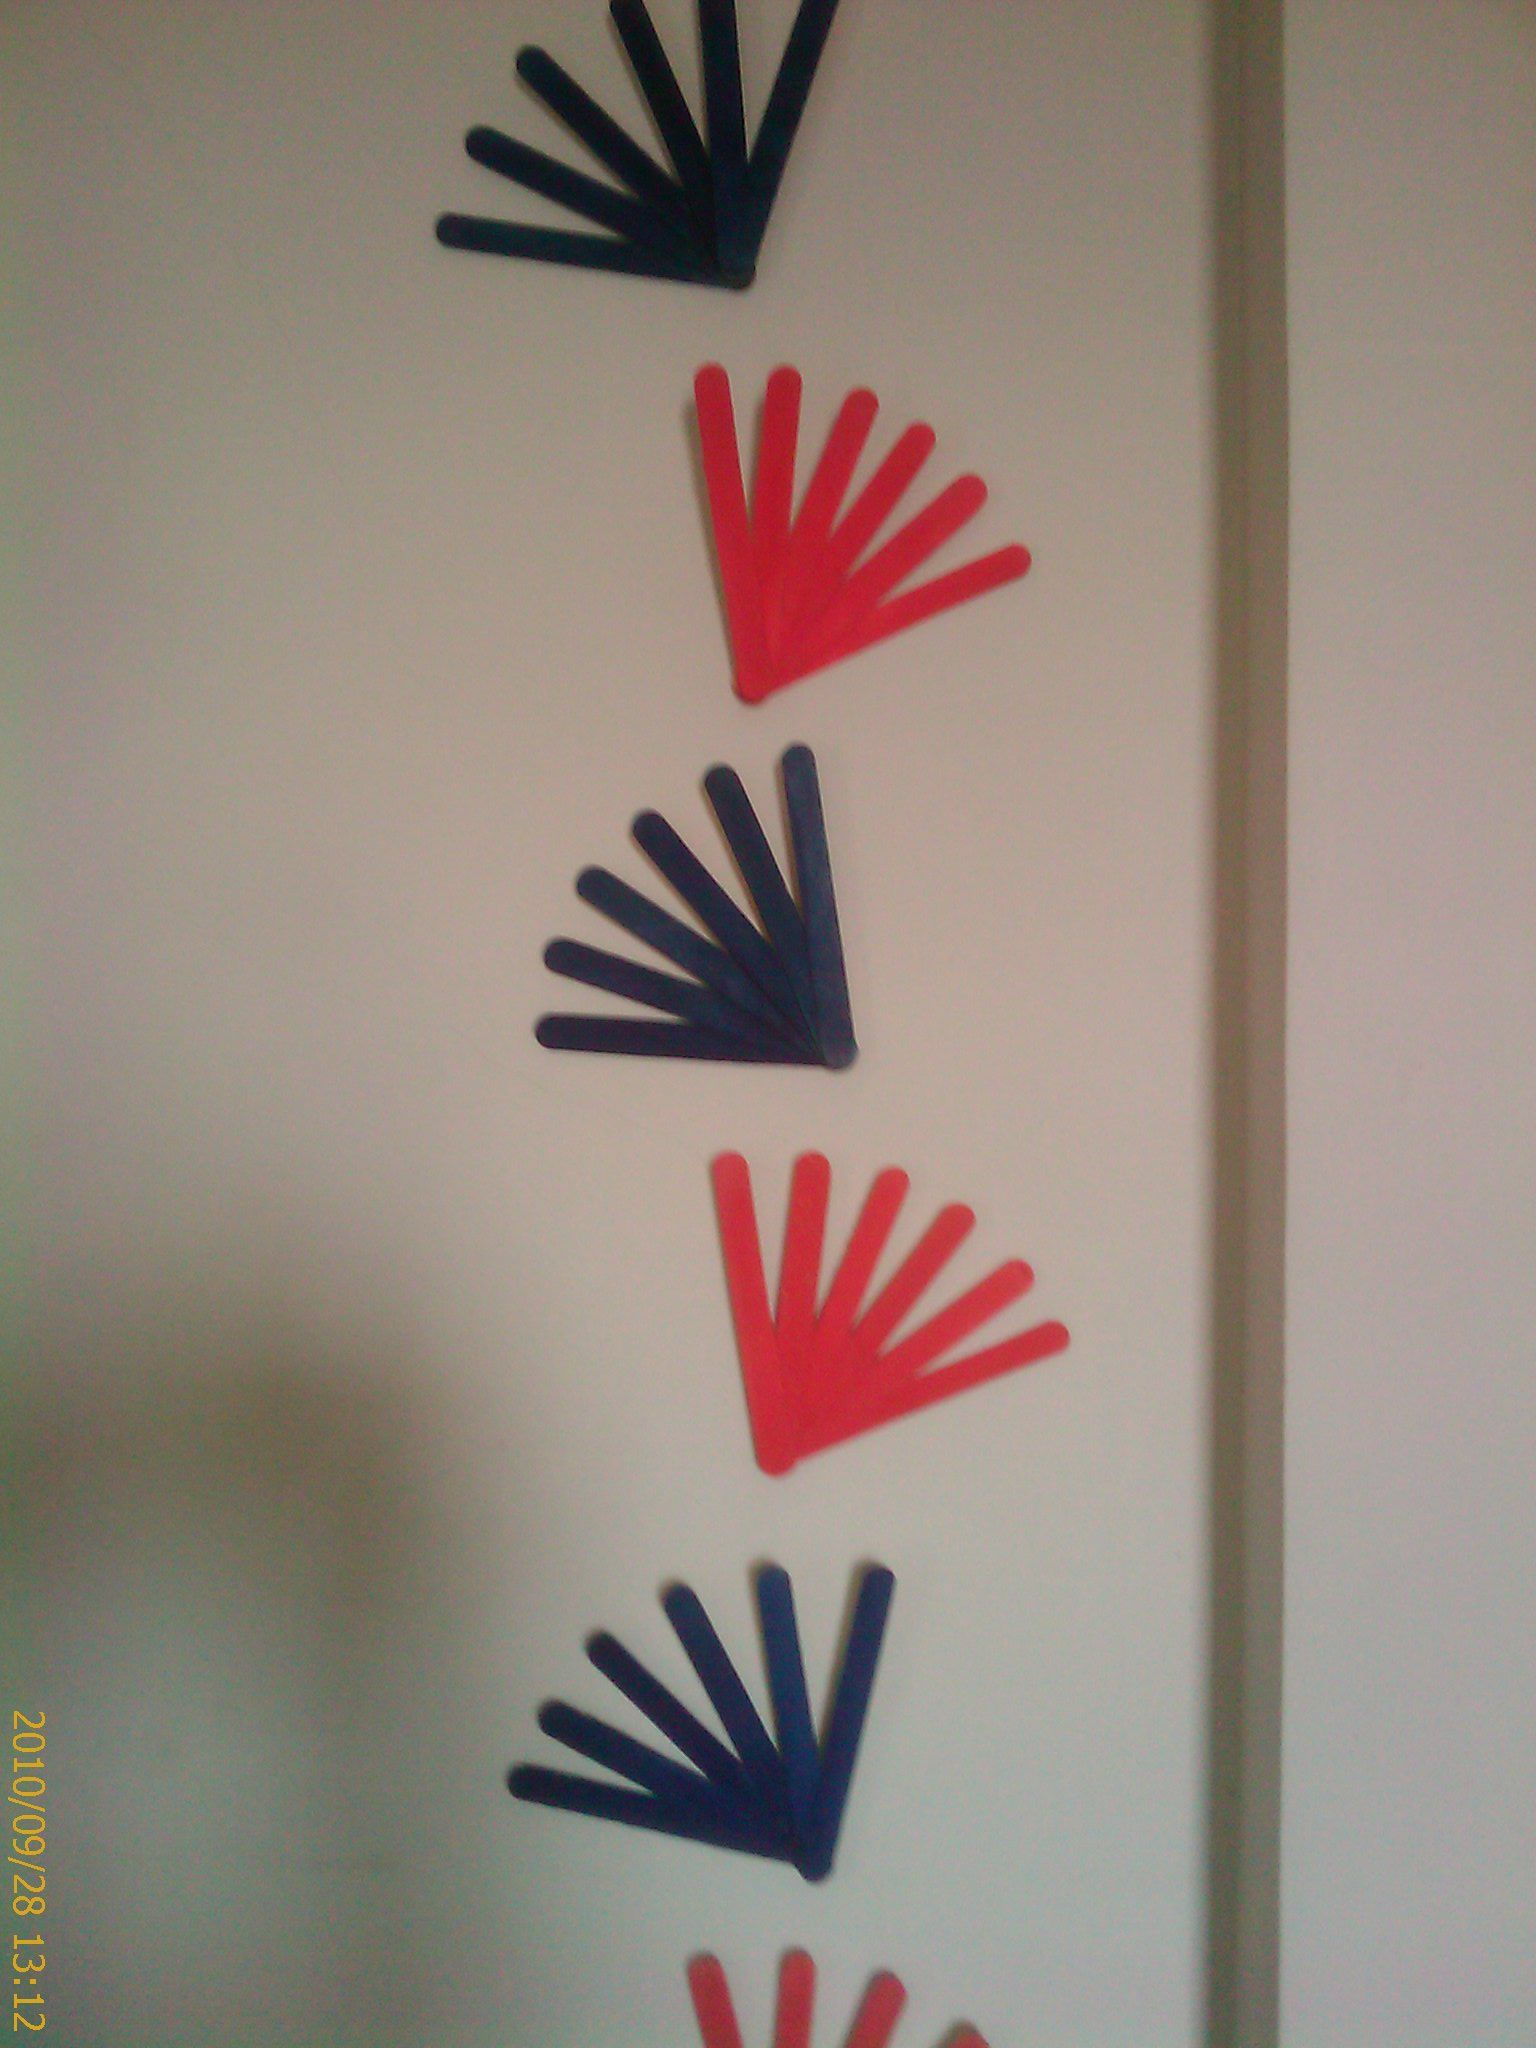 Diy Wall Decoration Made From Ice Cream Sticks For The Home